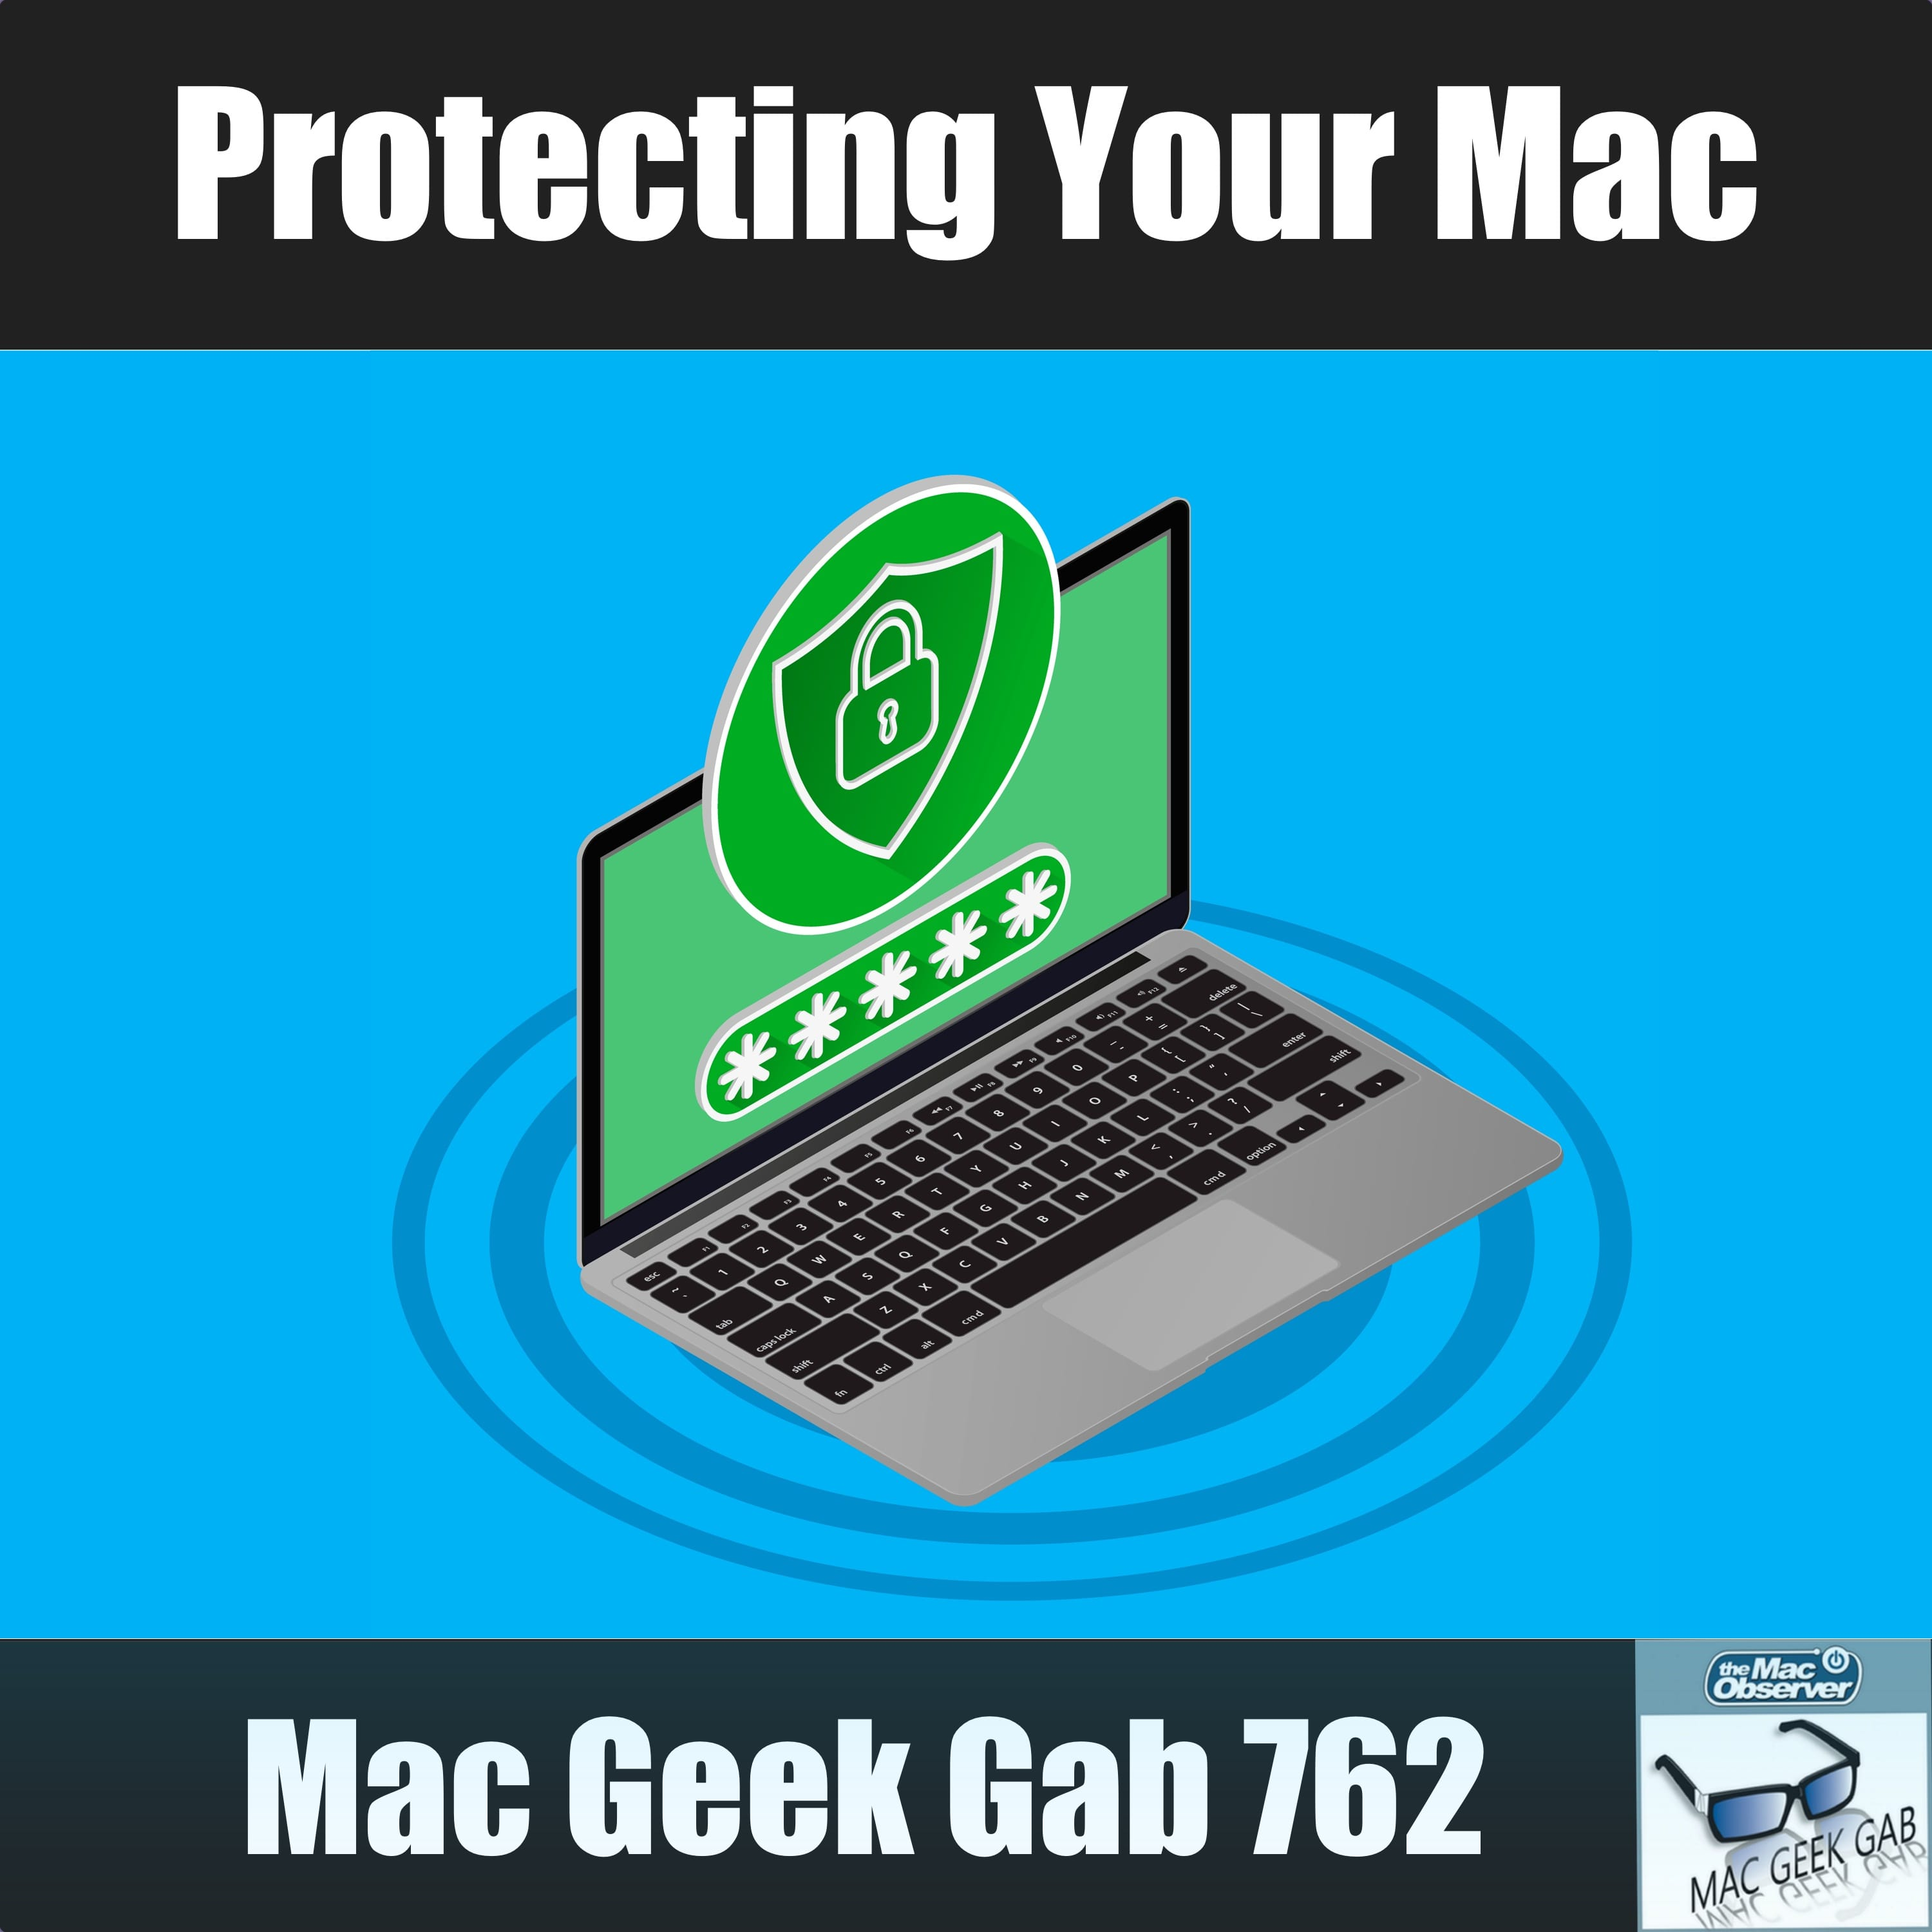 Protecting Your Mac and Router, New Handy Shortcuts